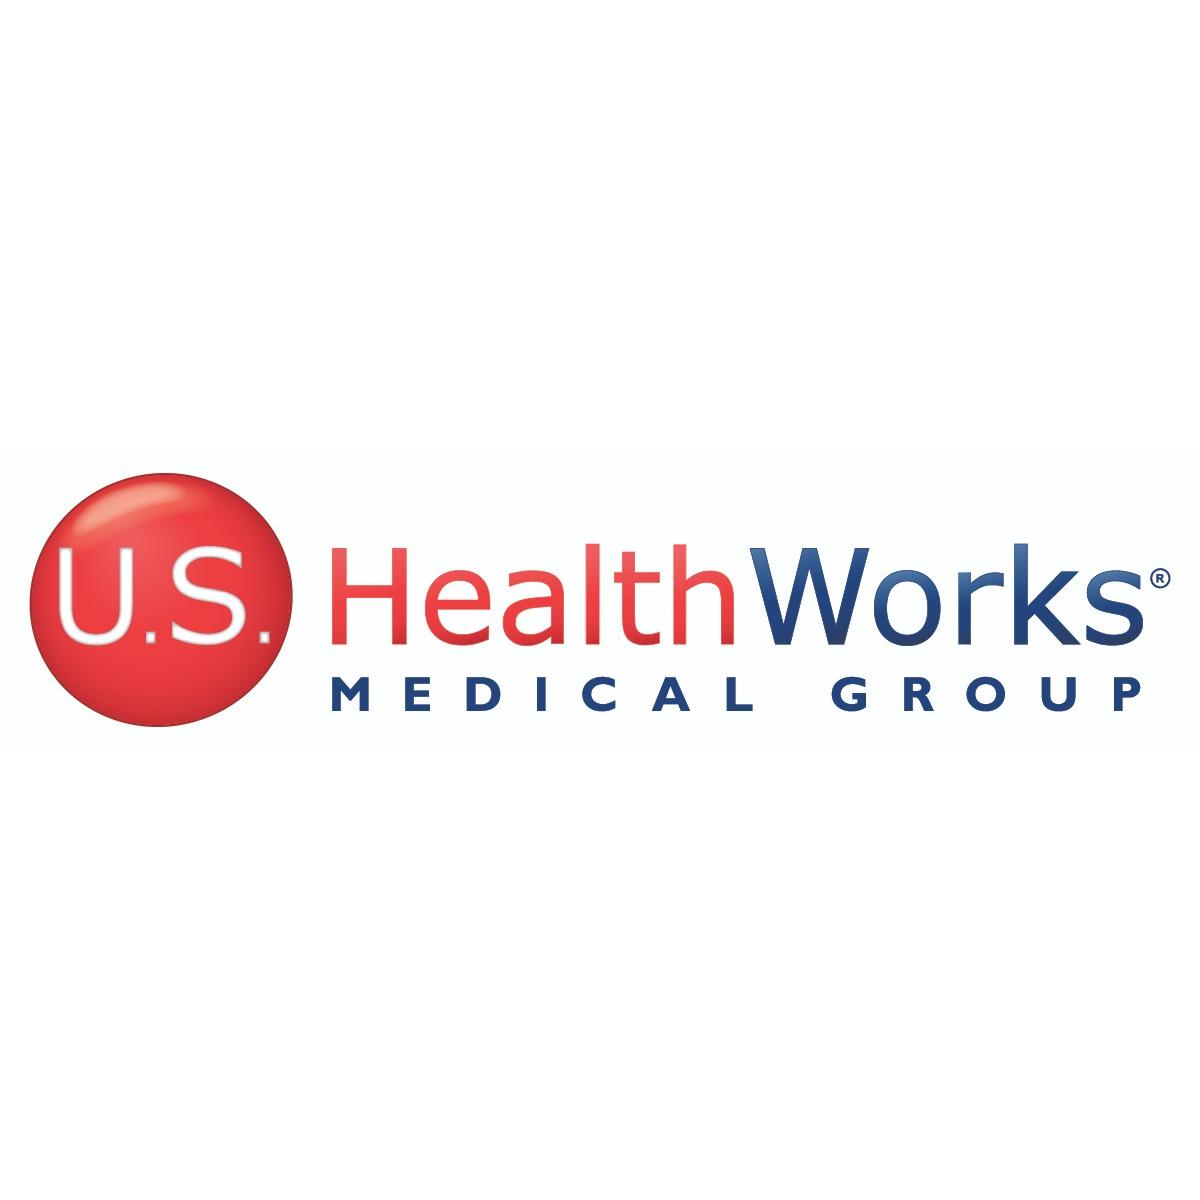 U.S. HealthWorks Physical Therapy - Spokane (Valley) - Spokane Valley, WA - Physical Therapy & Rehab